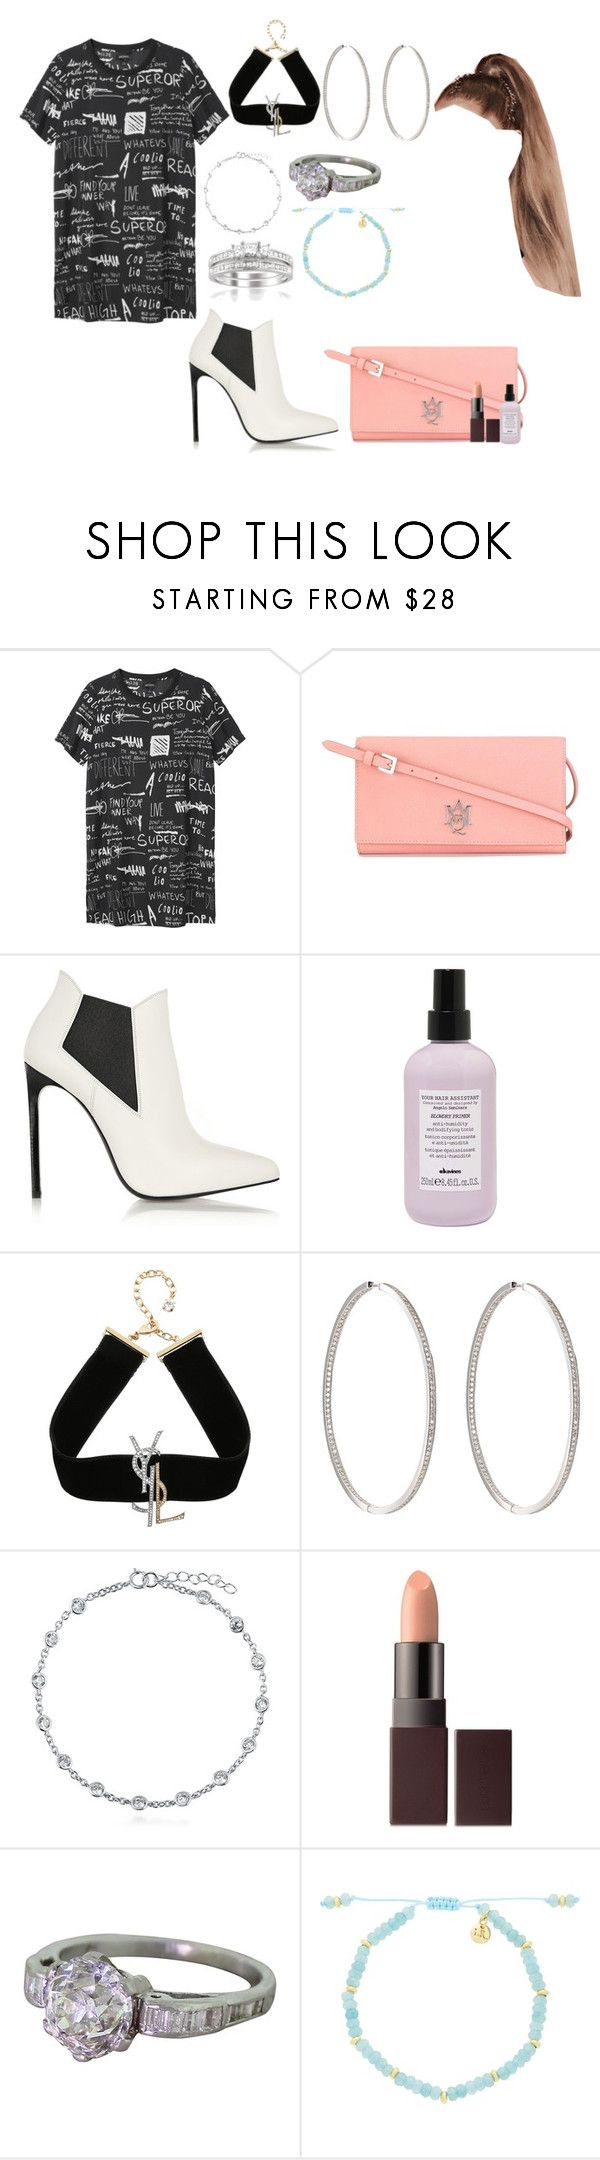 """The world can be a nasty place"" by moonlightbabby ❤ liked on Polyvore featuring Monki, Alexander McQueen, Yves Saint Laurent, Davines, Ambre Victoria, BERRICLE, Laura Mercier, Lola Rose and Montebello Jewelry"